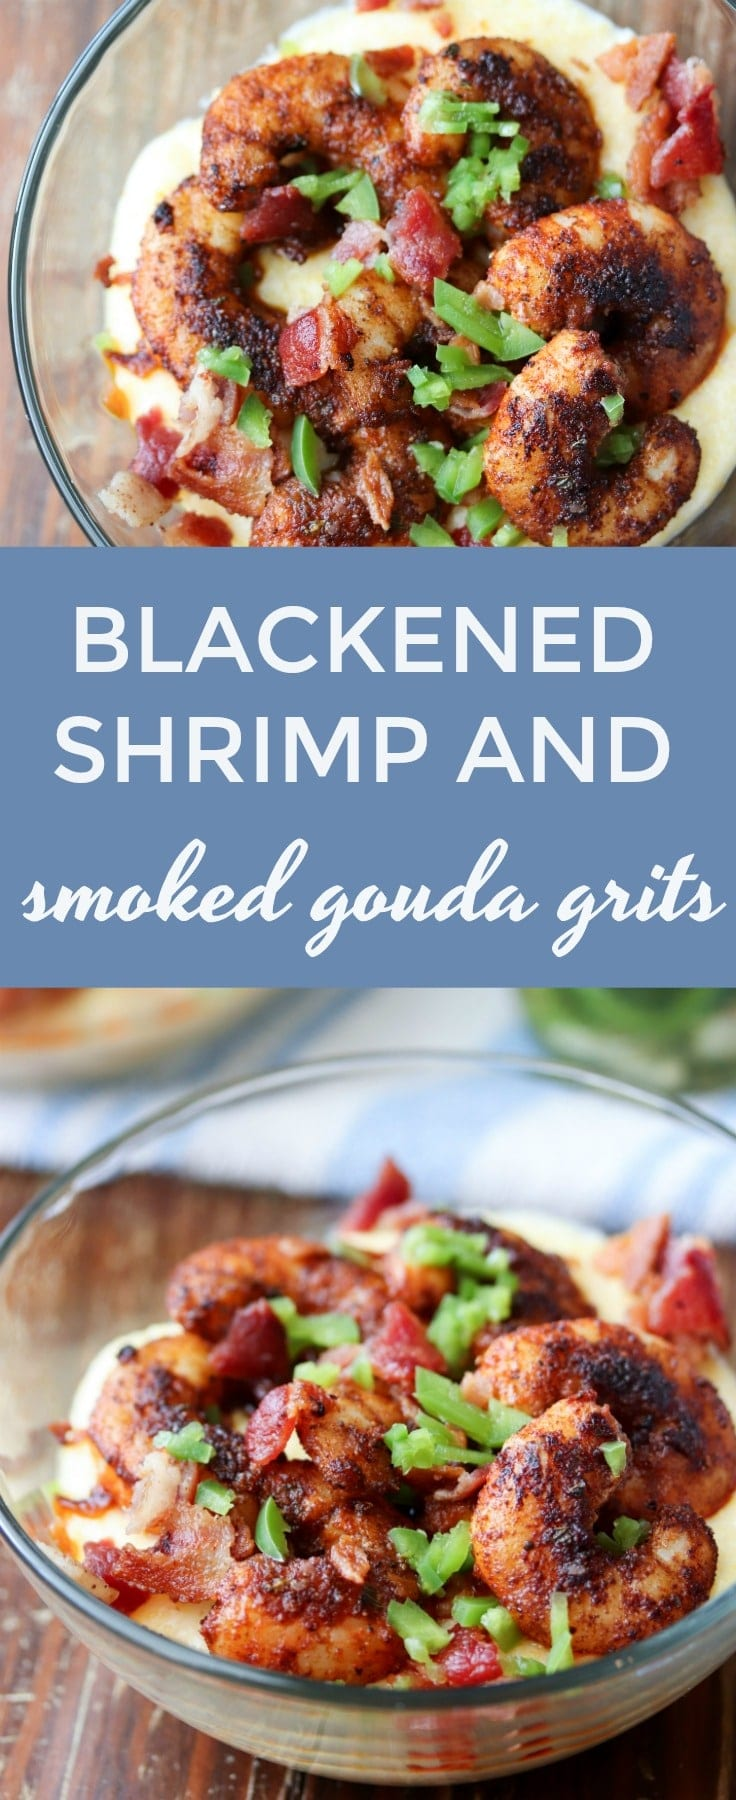 Flavorful blackened shrimp and grits made with smoked gouda cheese are a perfect quick and easy meal! Full of BOLD flavors. You can't beat a bowl of creamy cheese grits topped with shrimp and bacon. #shrimp #bacon #grits #southernfood #cheesegrits #seafood